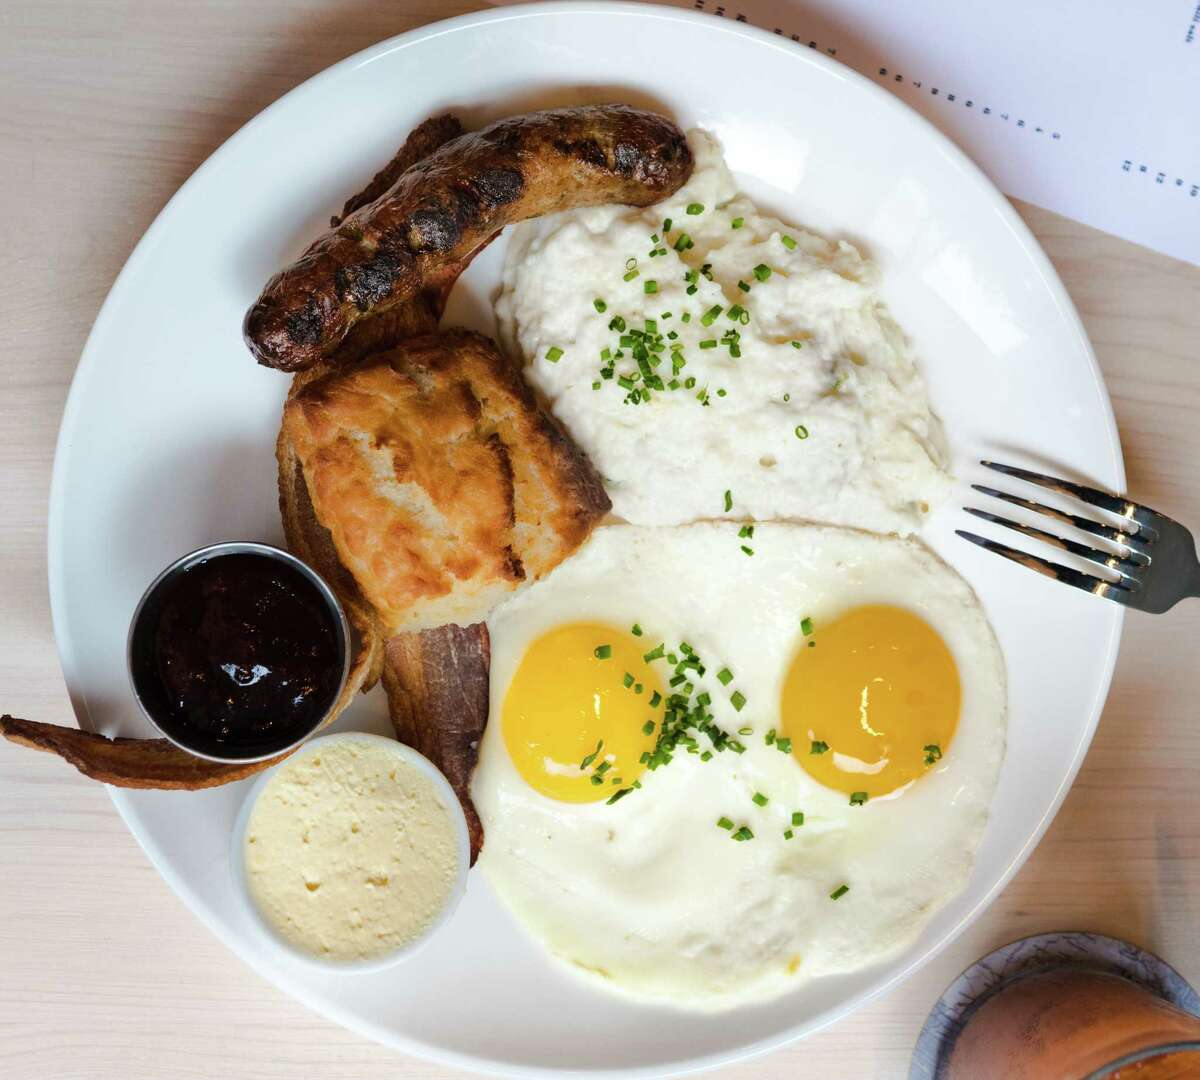 EUNICE The new Cajun-Creole brasserie has launched Sunday brunch service with a menu that includes a southern breakfast (two eggs, grits, bacon, sausage and buttermilk biscuit); steak and eggs; fried quail and biscuits with Tabasco honey; and a blue crab omelet. Also on the brunch menu: Croque Madame, blue crab and Gulf shrimp etouffee, Gulf drum, smoked chicken and sausage gumbo, fried oyster salad, roasted oysters, Cajun duck poppers and seafood platters. Chef Drake Leonards' restaurant is a handsome space, flooded with light, with a generous bar and patio seating. Where: 3737 Buffalo Speedway, 832-491-1717; eunicerestaurant.com What: New Sunday brunch at this Cajun-Creole brasserie includes the Southern breakfast: two eggs any style, stone-ground grits, bacon, sausage and buttermilk biscuit.